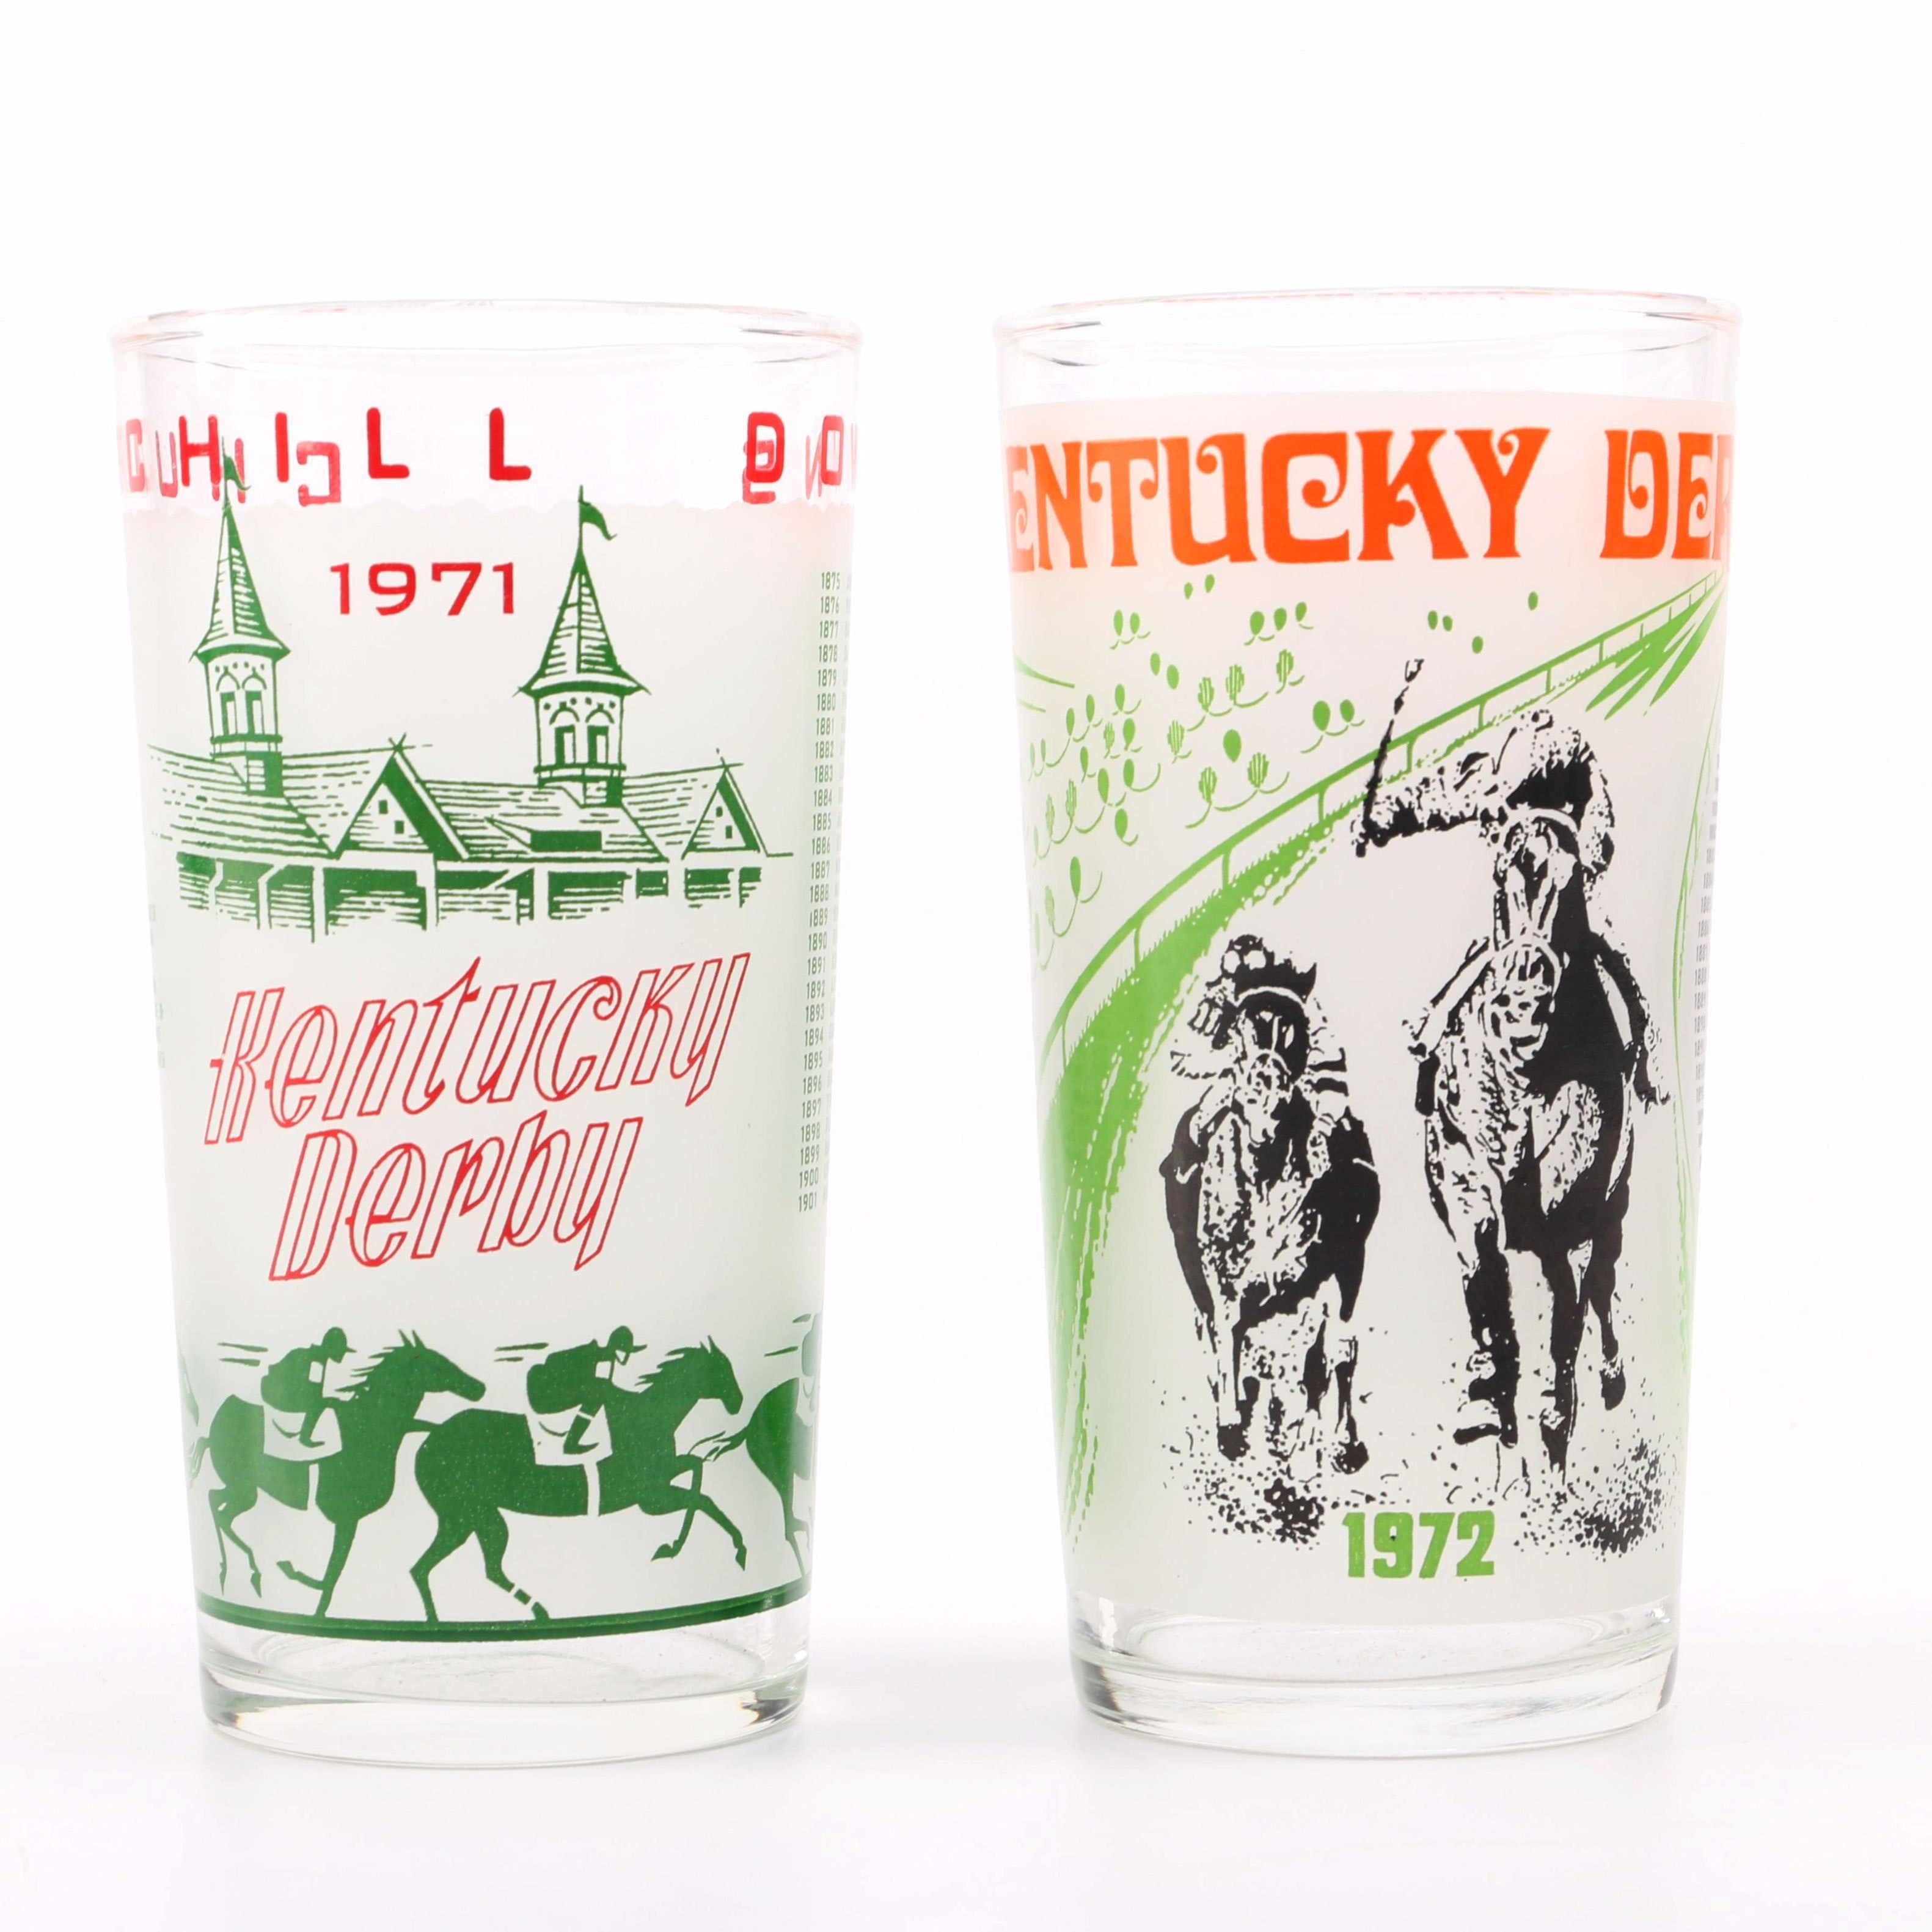 1971 and 1972 Kentucky Derby Glasses